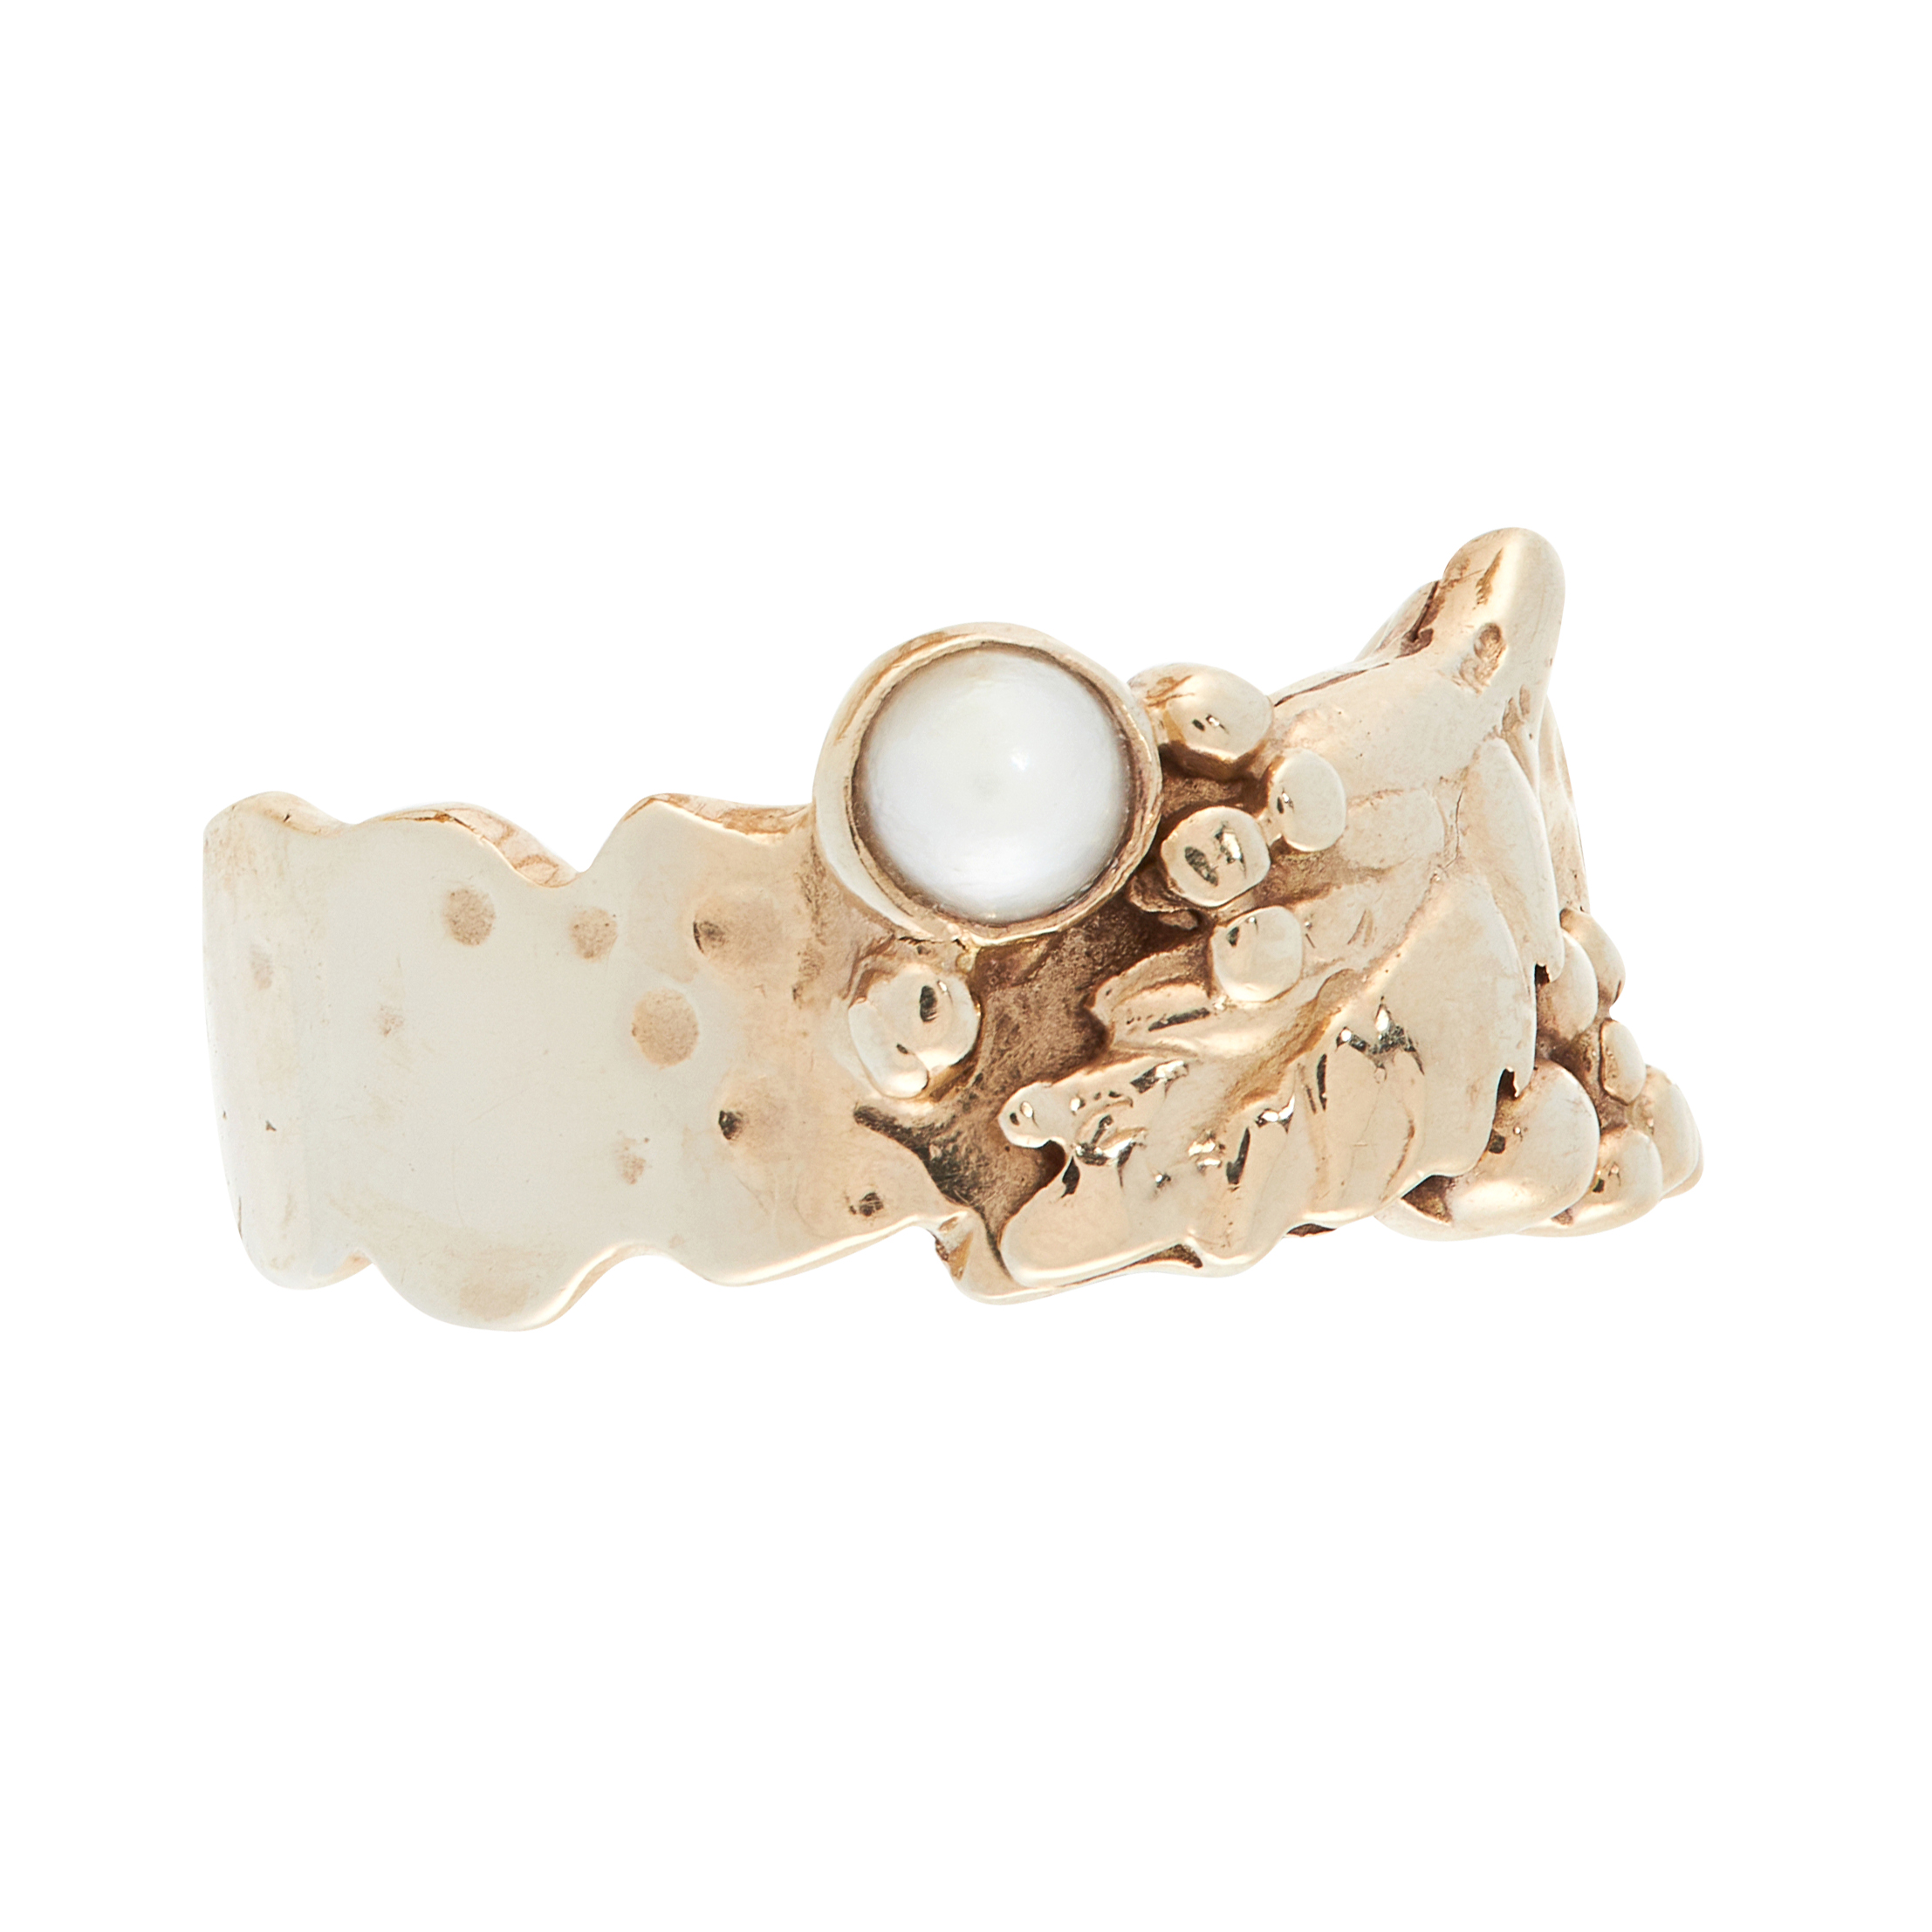 A VINTAGE PEARL DRESS RING in yellow gold, the stylised band formed of grape and vine motifs, set